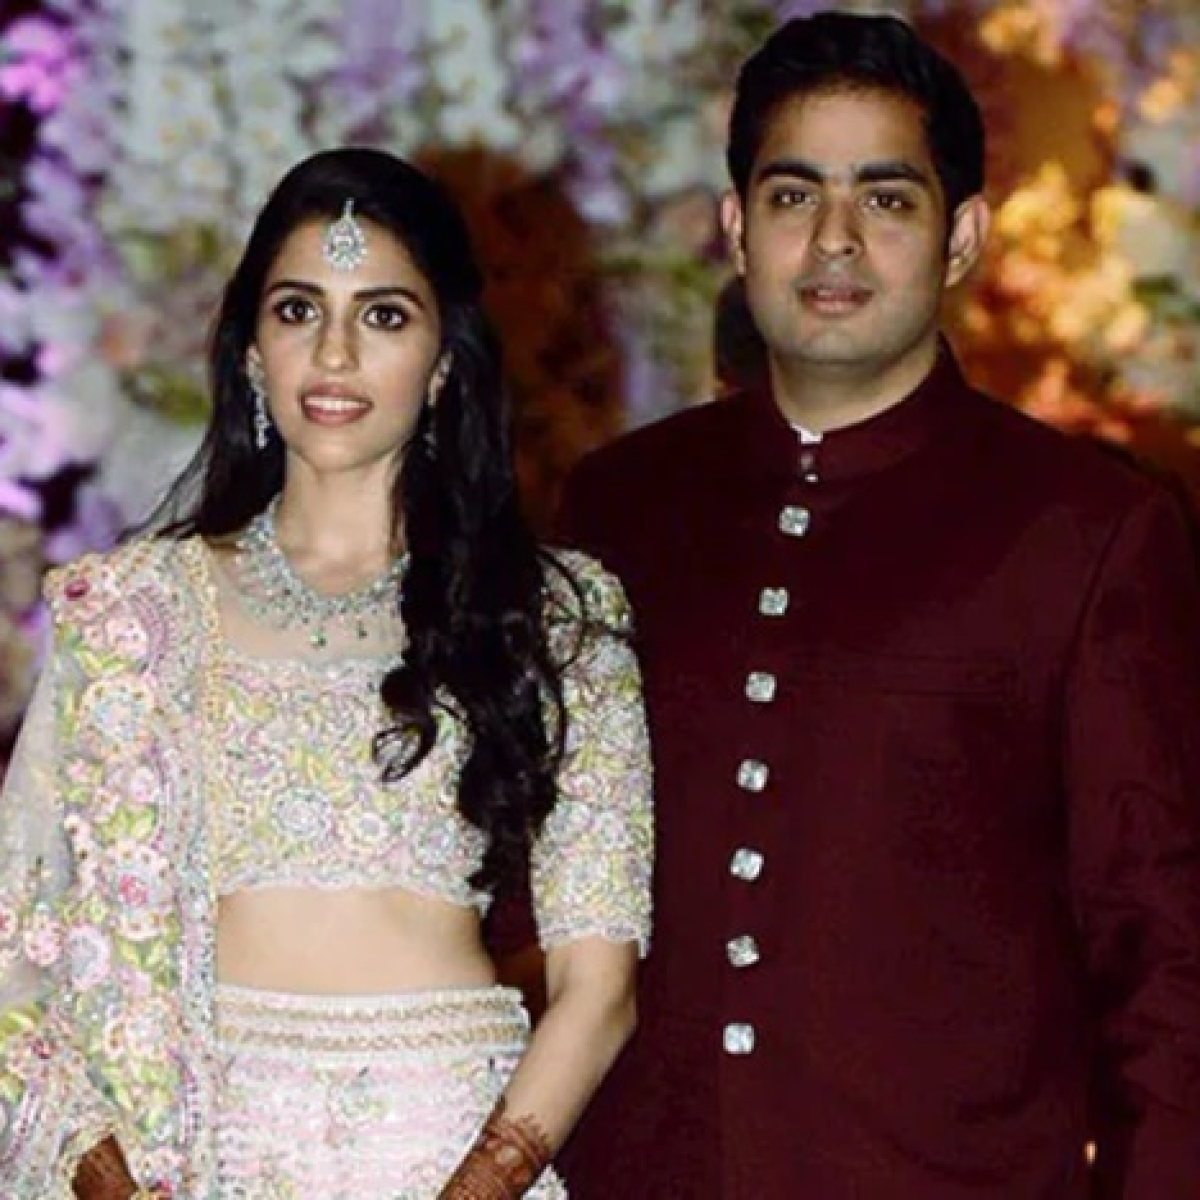 Akash and Shloka welcome baby boy: With Mukesh Ambani's wealth of Rs 5.7 lakh crore, is his grandson world's richest infant?